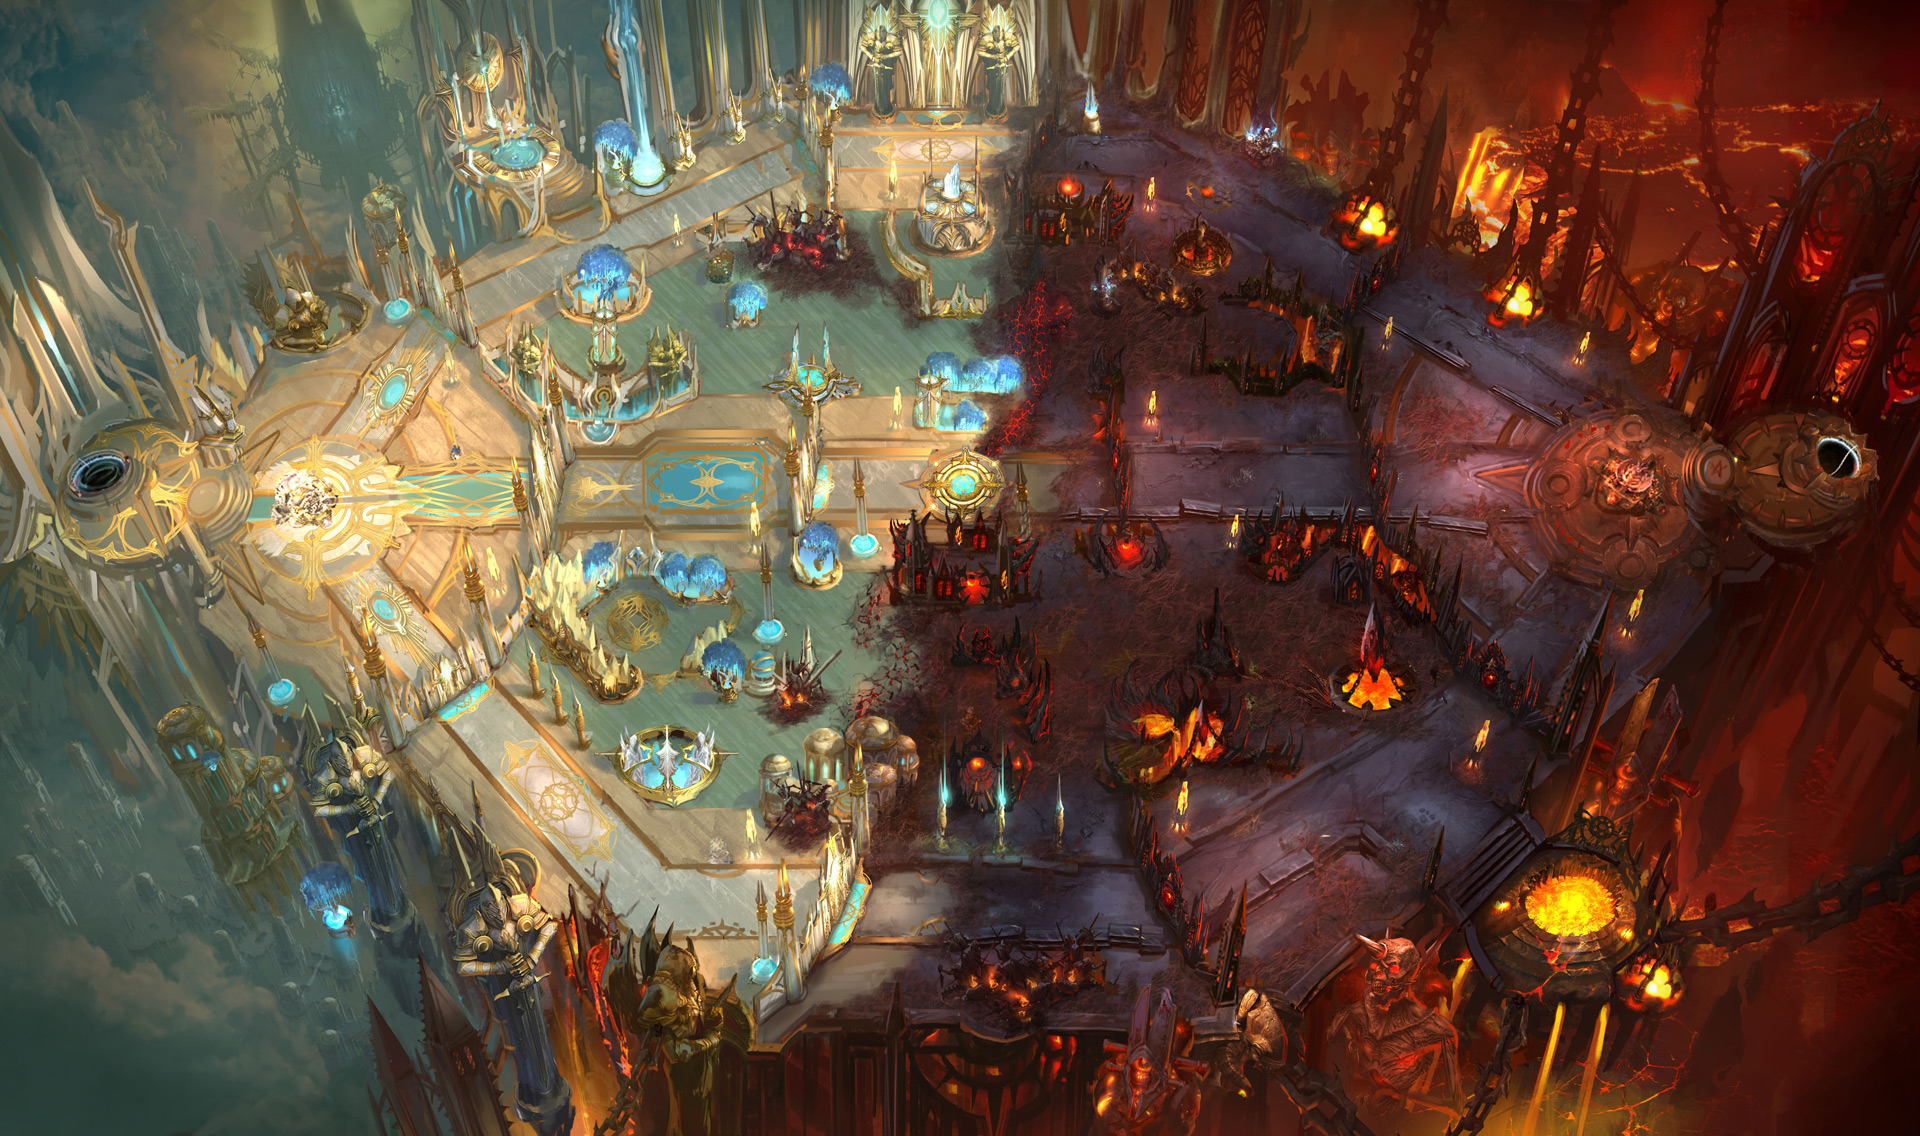 diablo 3 how to join public test realm 2.5